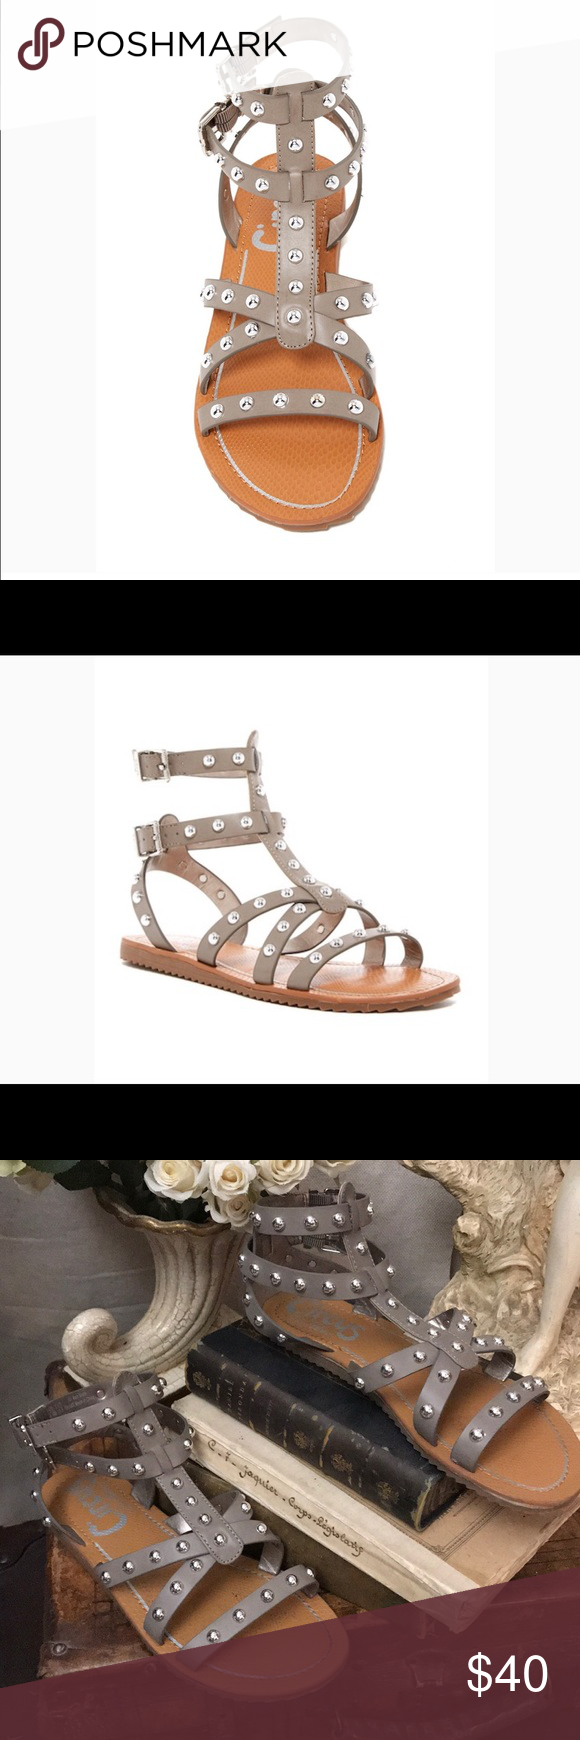 9b3d9798b220 Circus by Sam Edelman Shane Gladiator sandals Sam Edelman Gladiator sandals  Great edgy look In fantastic condition Neutral taupe gray color Worn one  time ...